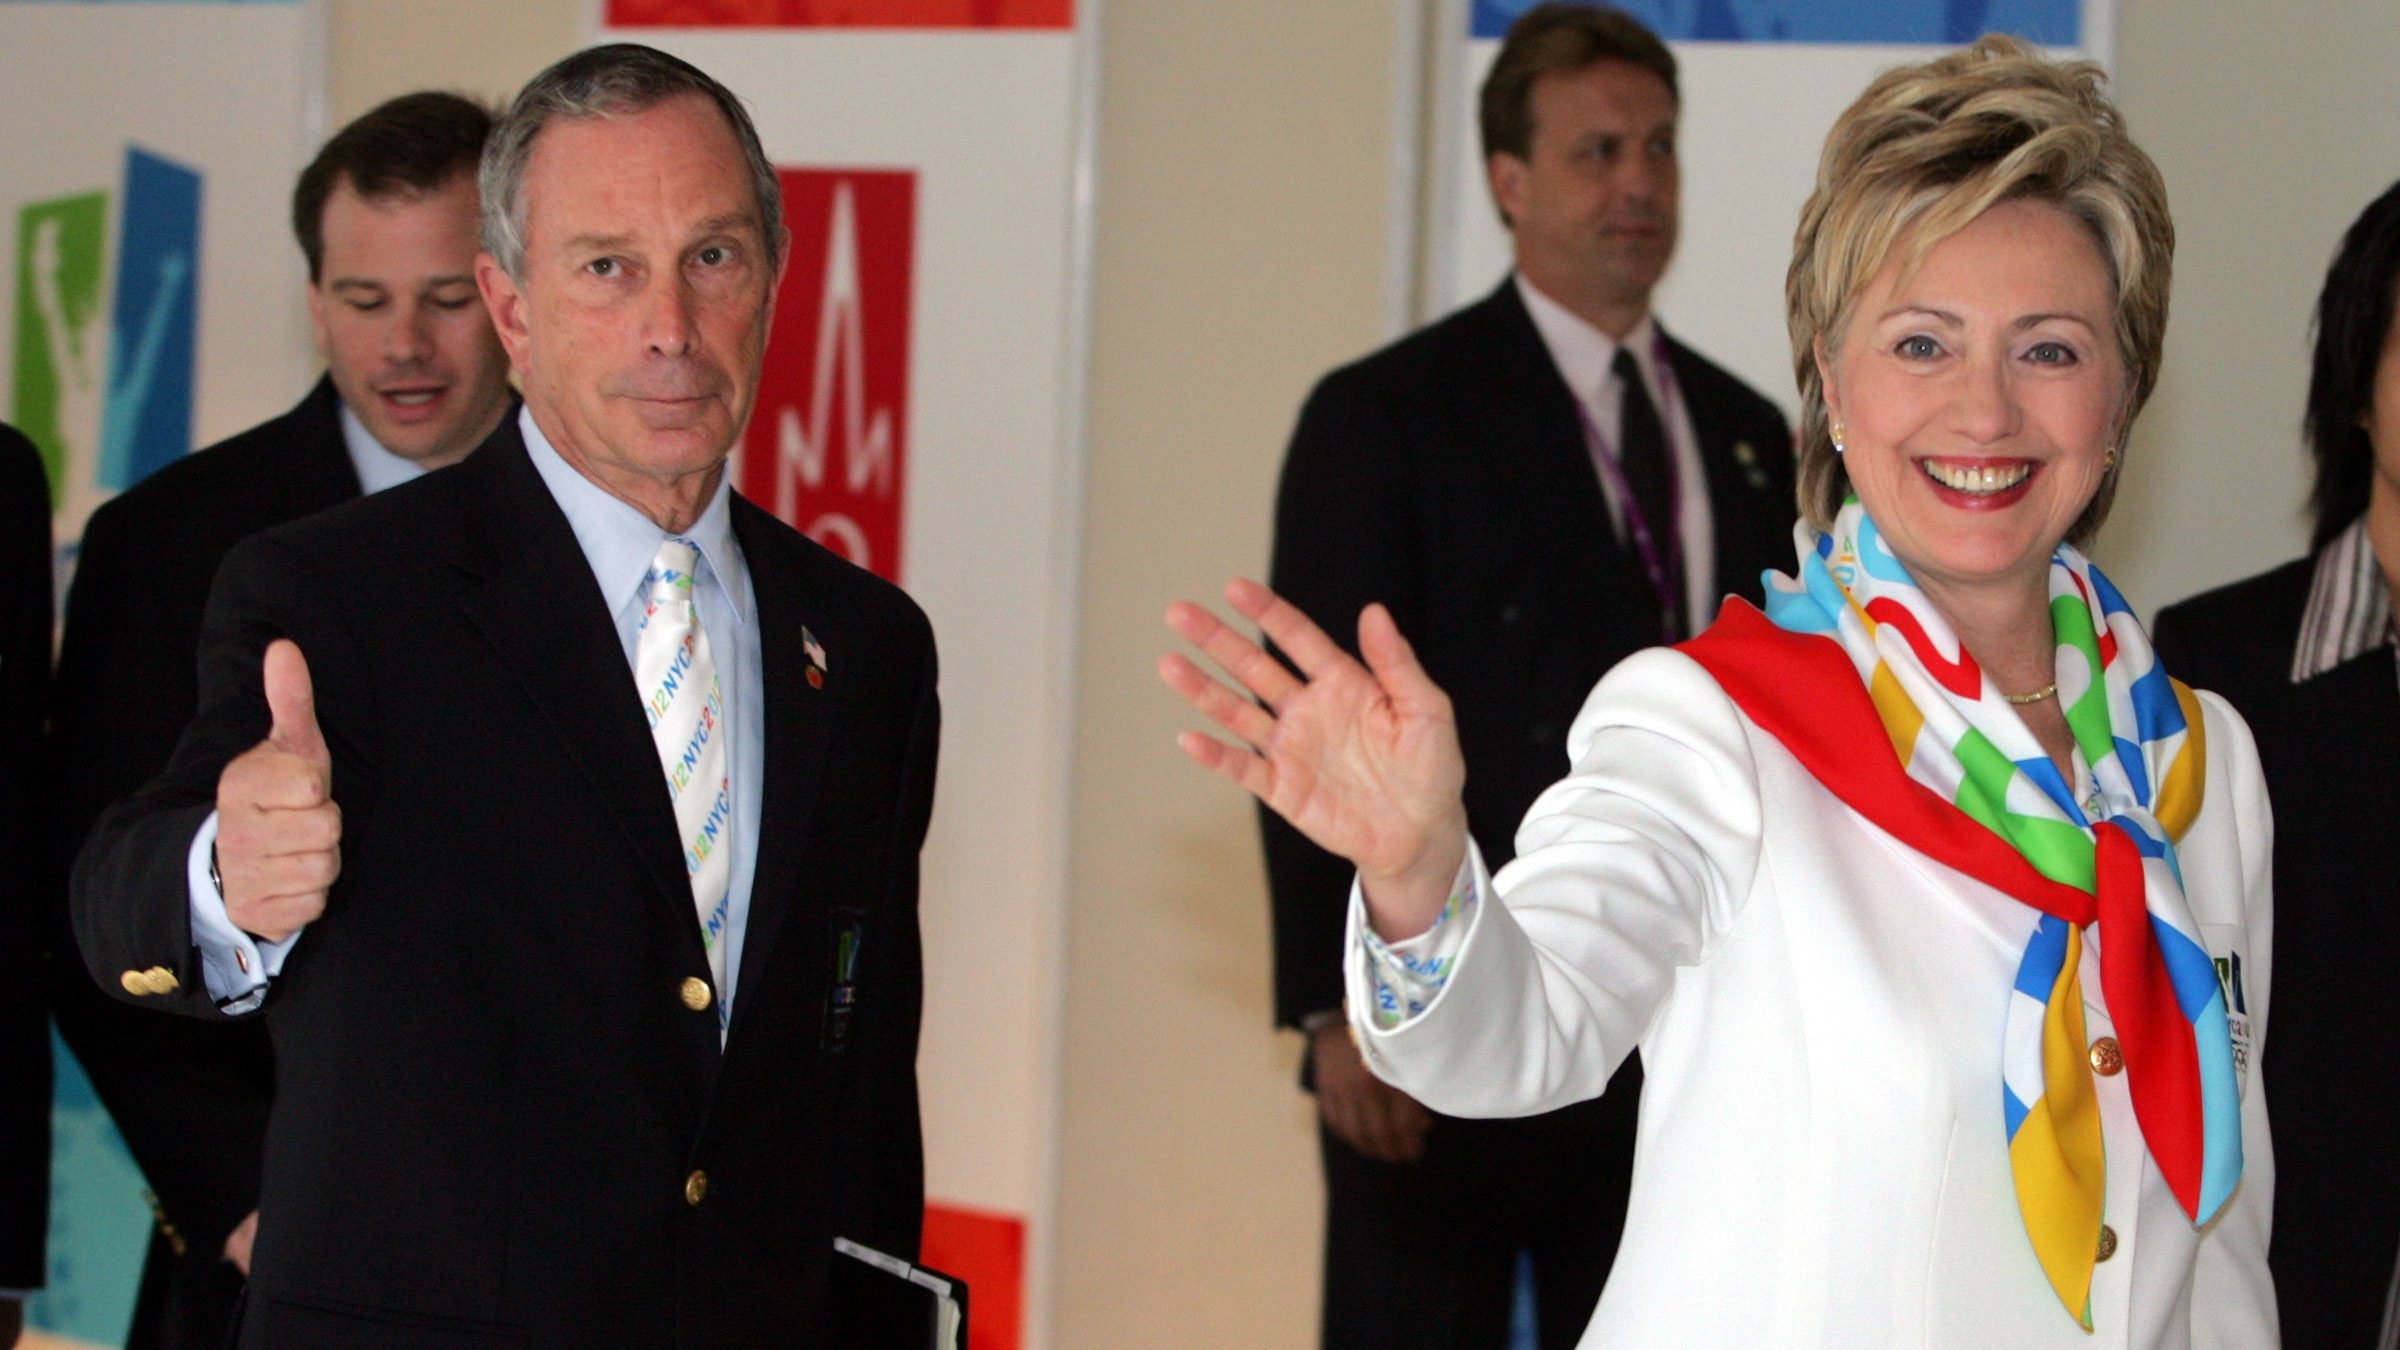 US Senator and former first lady Hillary Clinton and New York Mayor Michael Bloomberg arrive in Singapore.  U.S. Senator and former first lady Hillary Clinton (R) and New York Mayor Michael Bloomberg (L) arrive at the opening of the 117th International Olympic Committee session to make the New York City bid for the 2012 Olympic games in Singapore July 6, 2005. Paris, London, New York City, Madrid and Moscow are competing to win the right to host the 2012 Summer Olympic Games in an IOC vote which will be held in Singapore on Wednesday.